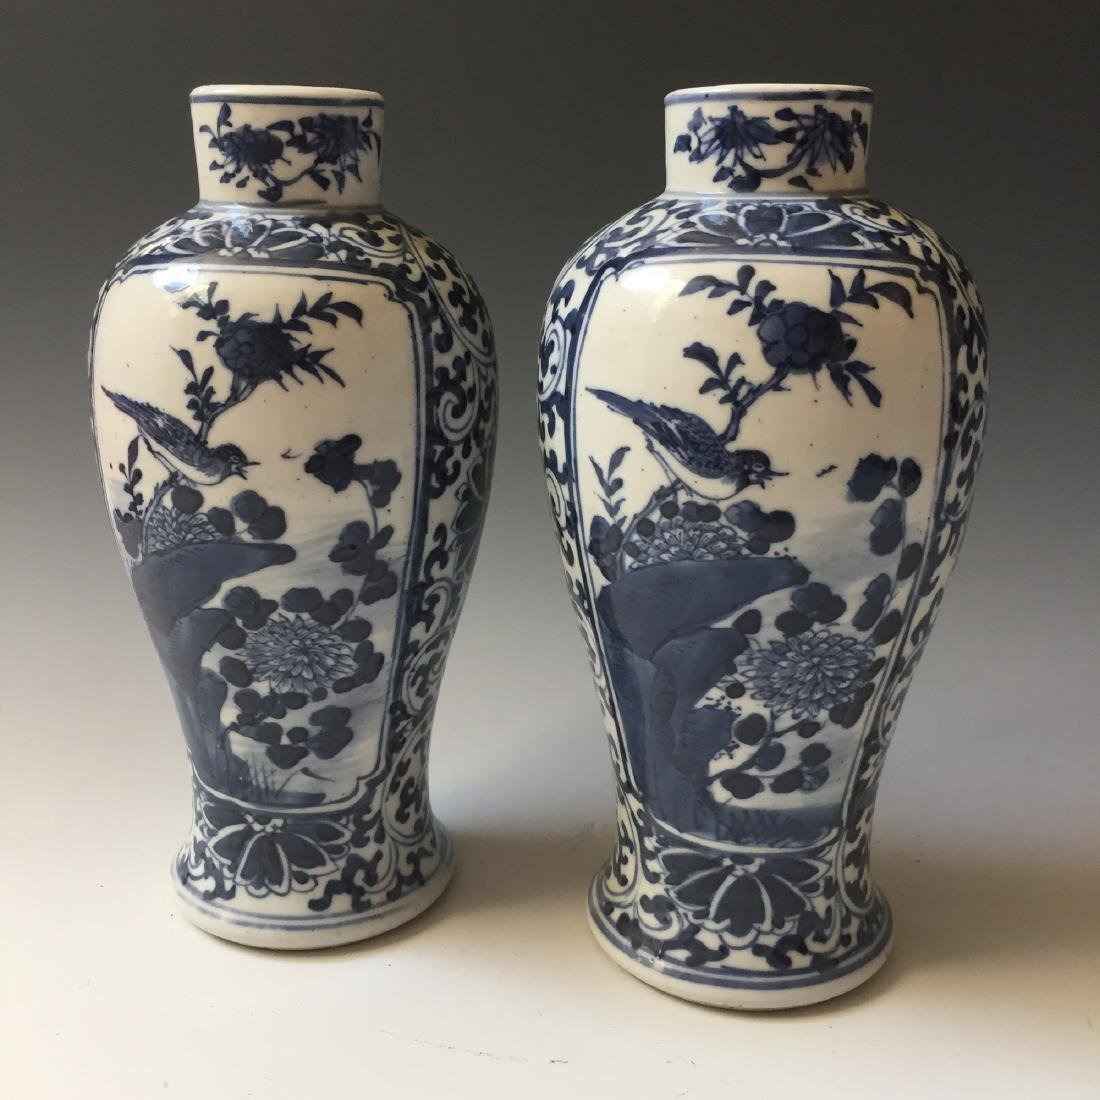 A PAIR CHINESE ANTIQUE BLUE AND WHITE VASE,19C. - 2